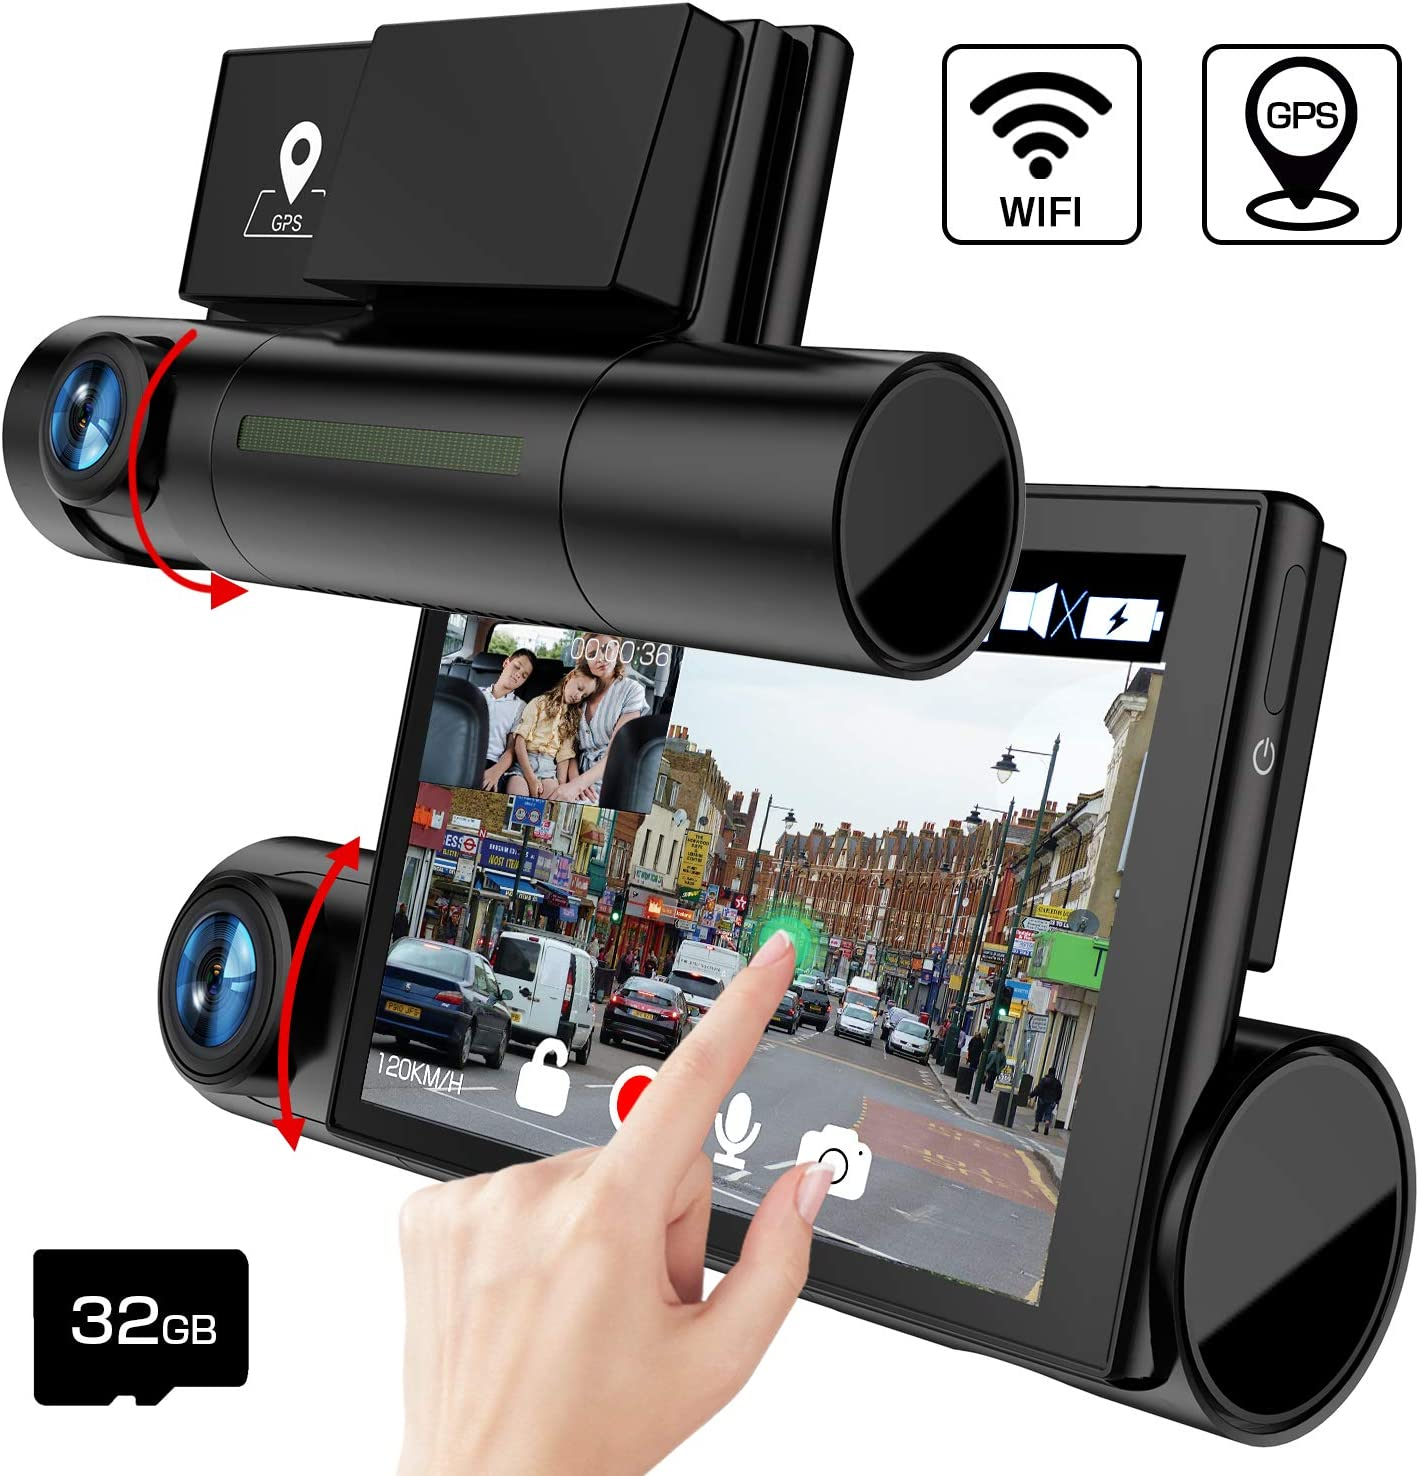 AKEEYO D7 Dash Cam Front and Rear 3 Inch OLED Screen 1080P FHD Dual Lens Car Dash Camera with WDR, Night Vision, GPS, WiFi, Loop Recording, G-Sensor